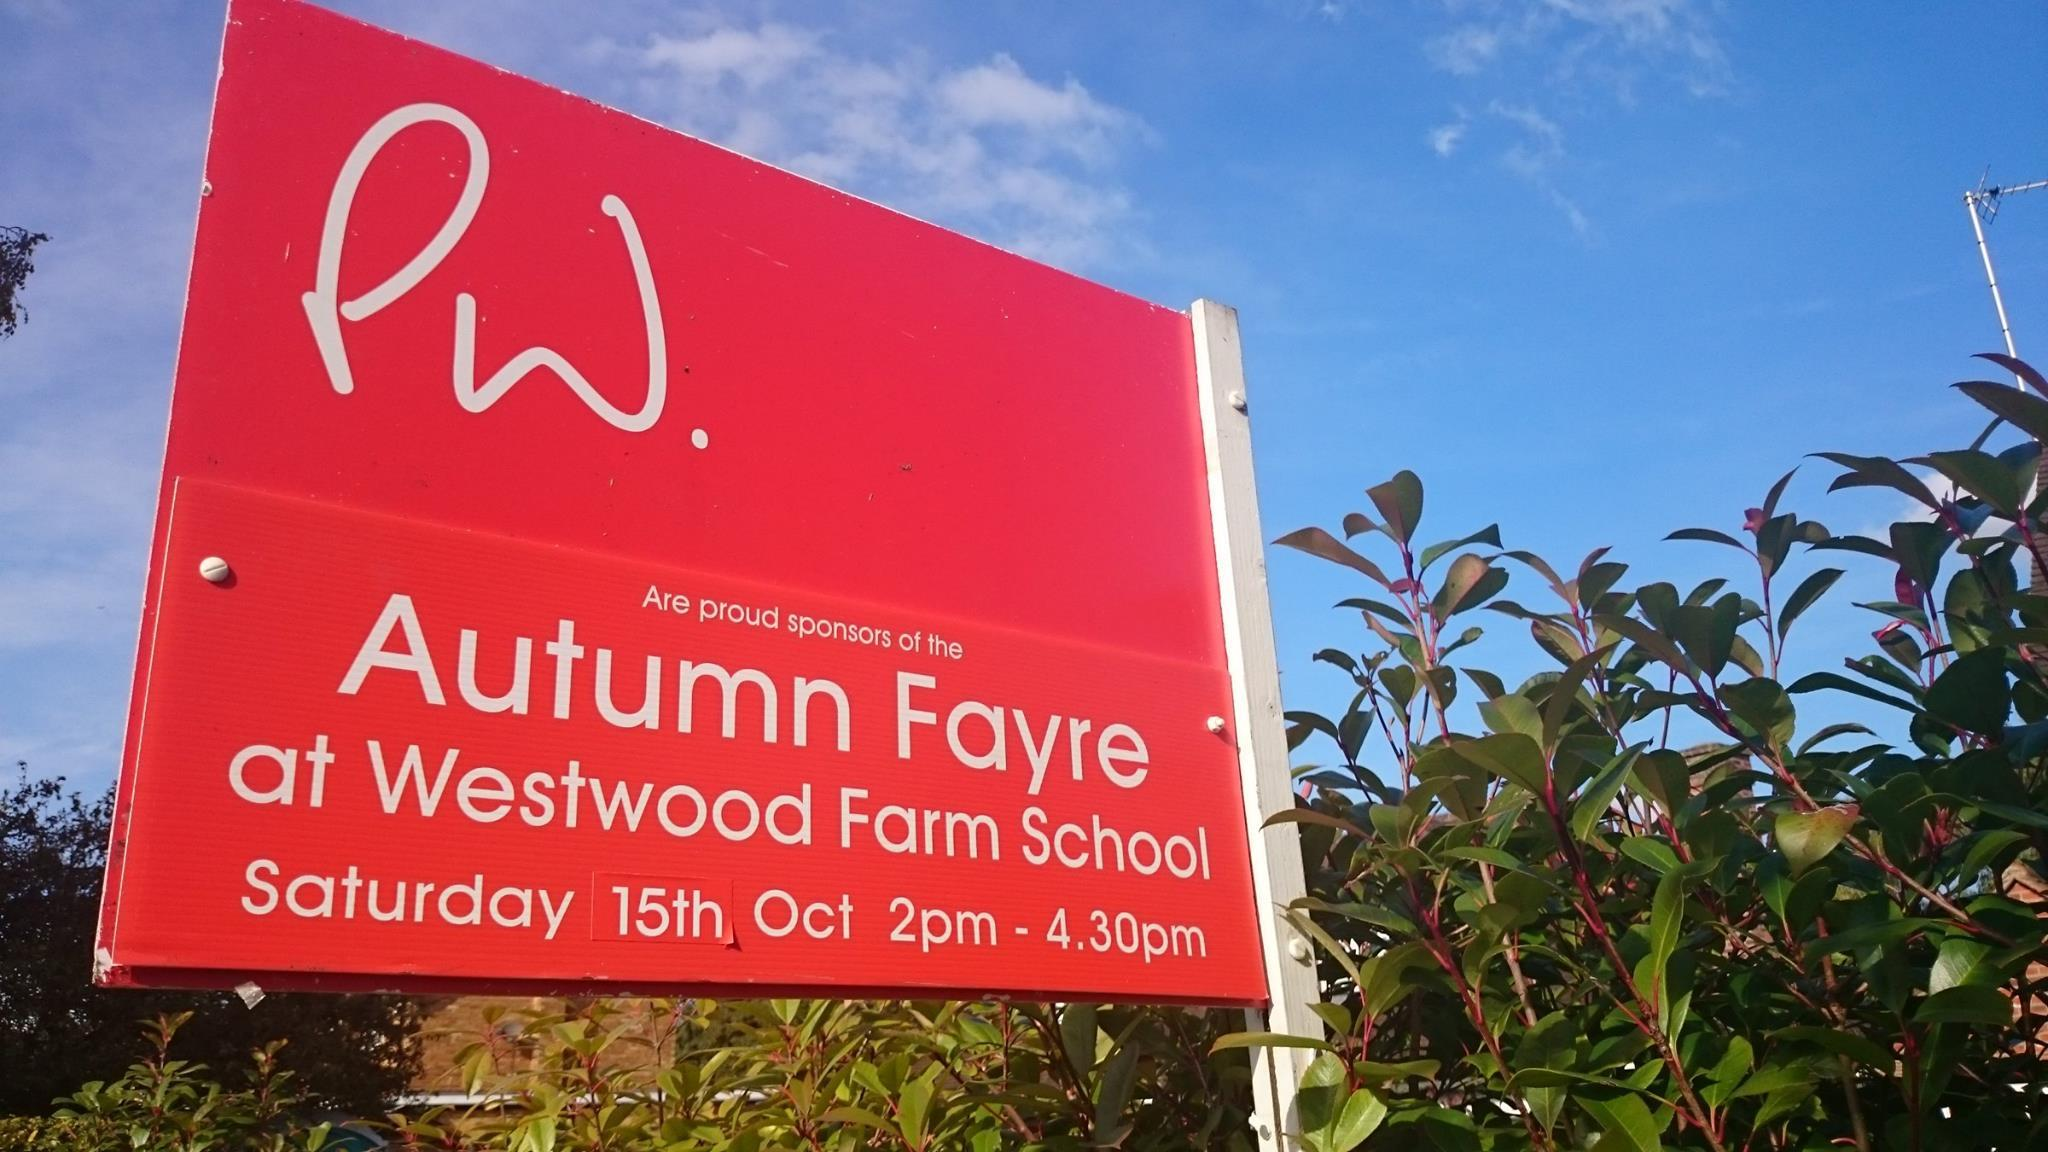 Westwood Farm School Autumn Fayre - Update